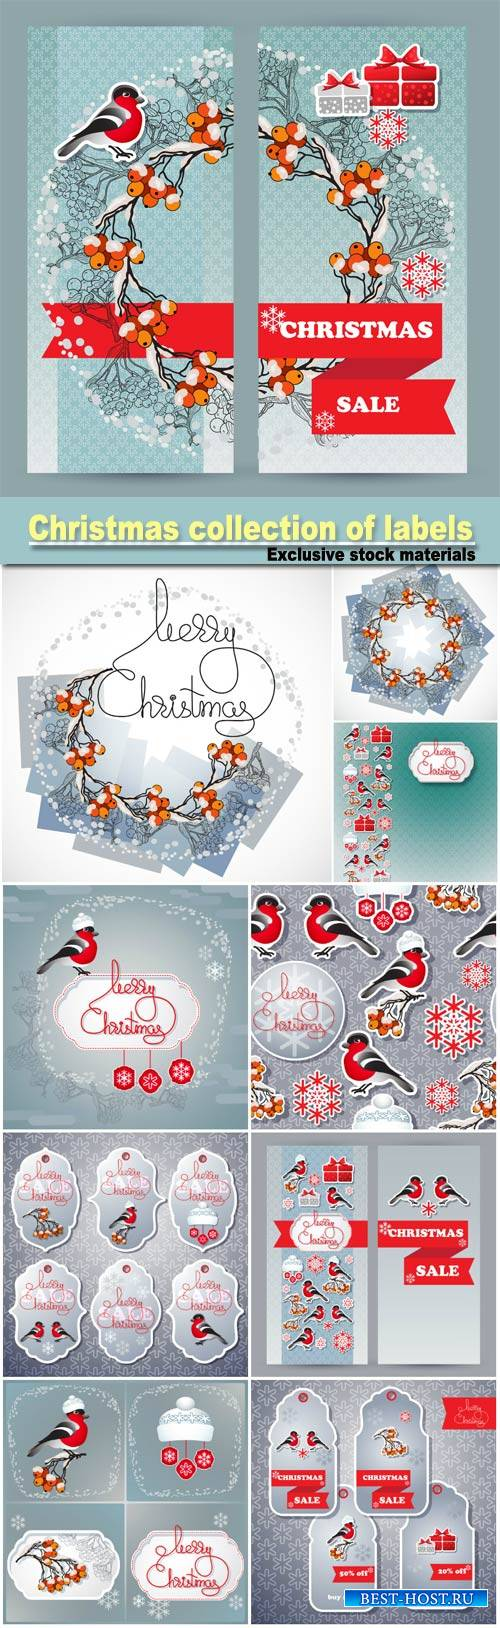 Christmas collection of labels and cards, sale stickers with winter emblem